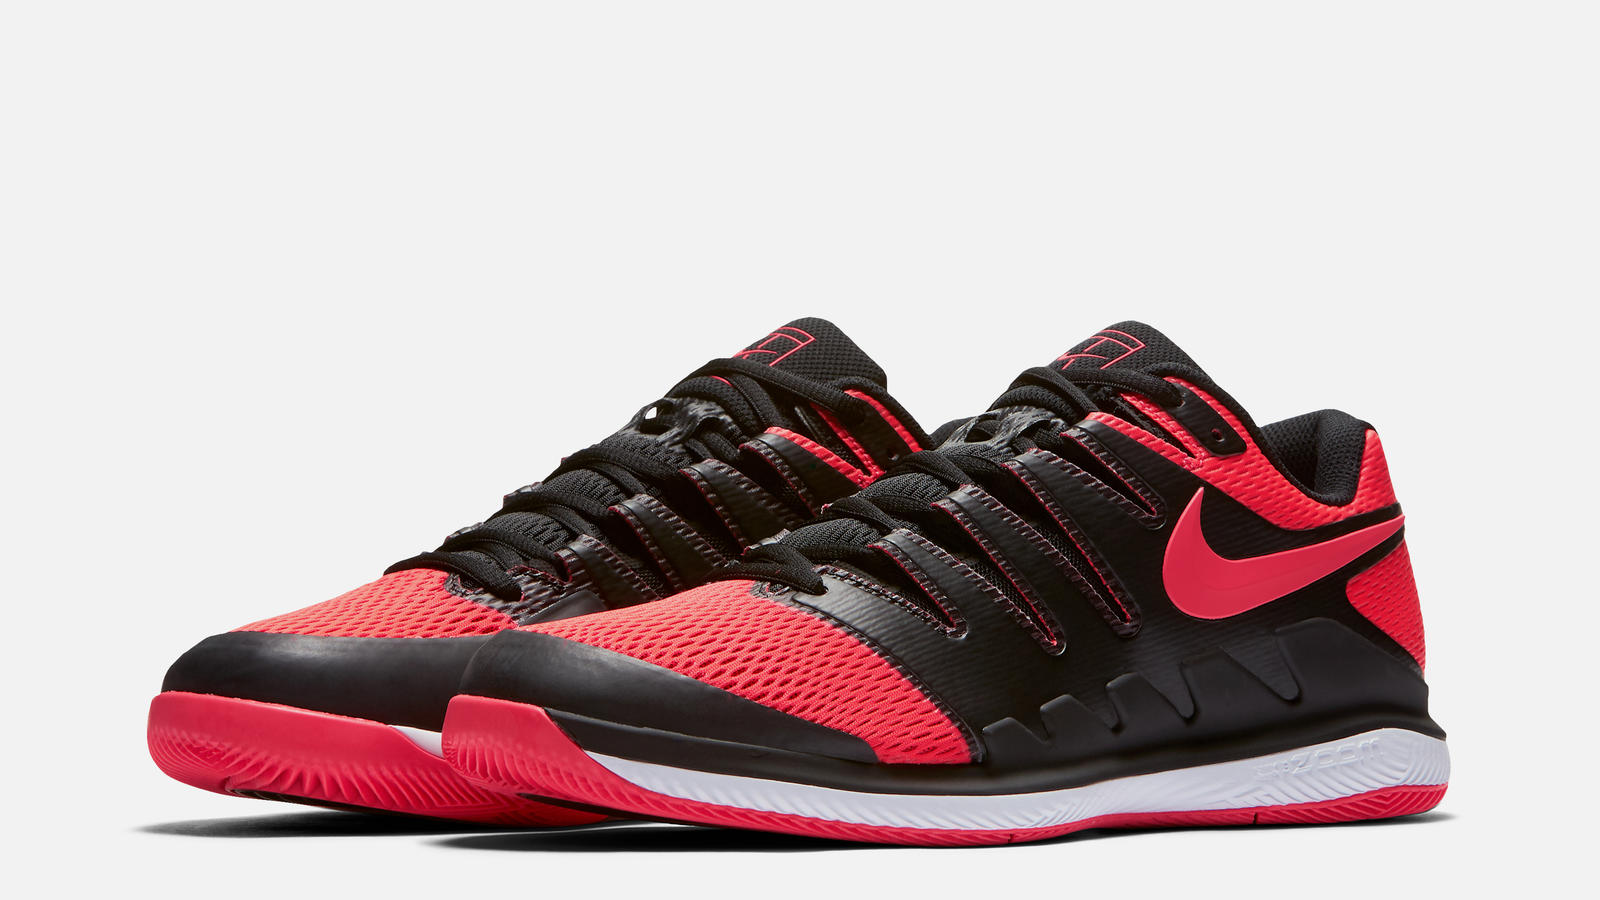 94bbcab65971 Introducing the NikeCourt Vapor X - Nike News